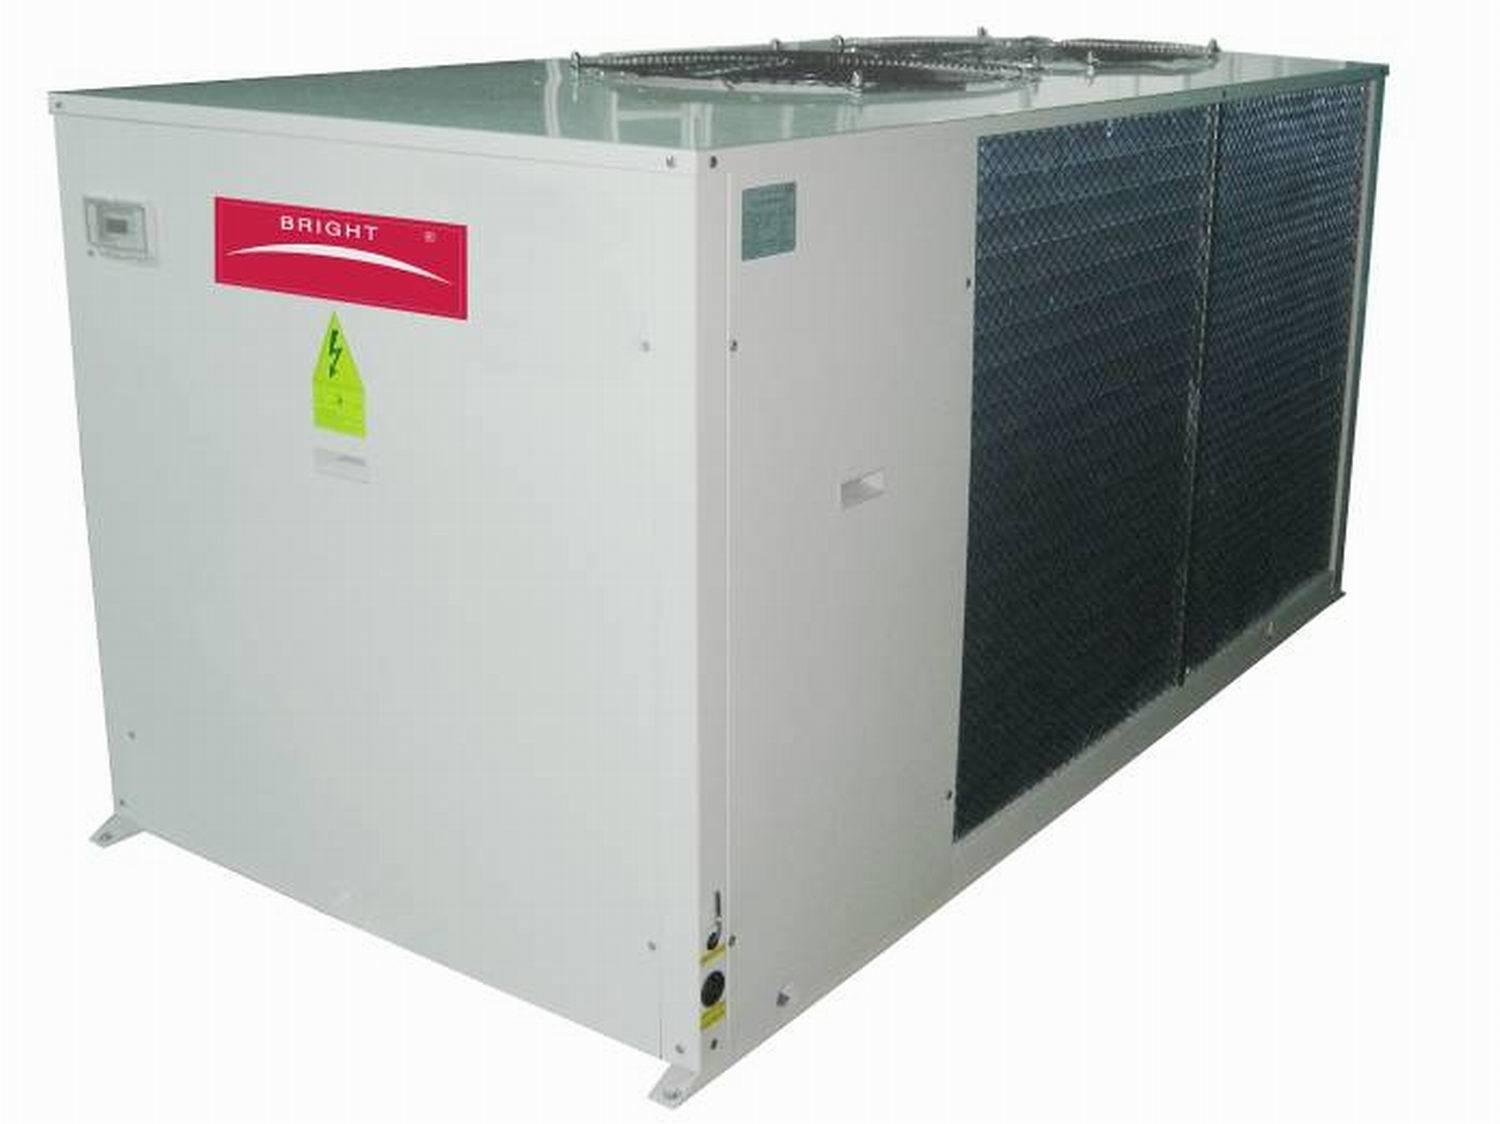 China Air Cooled Water Chiller and Heat Pump With Axial Fans (H(R)AF  #B11A3C